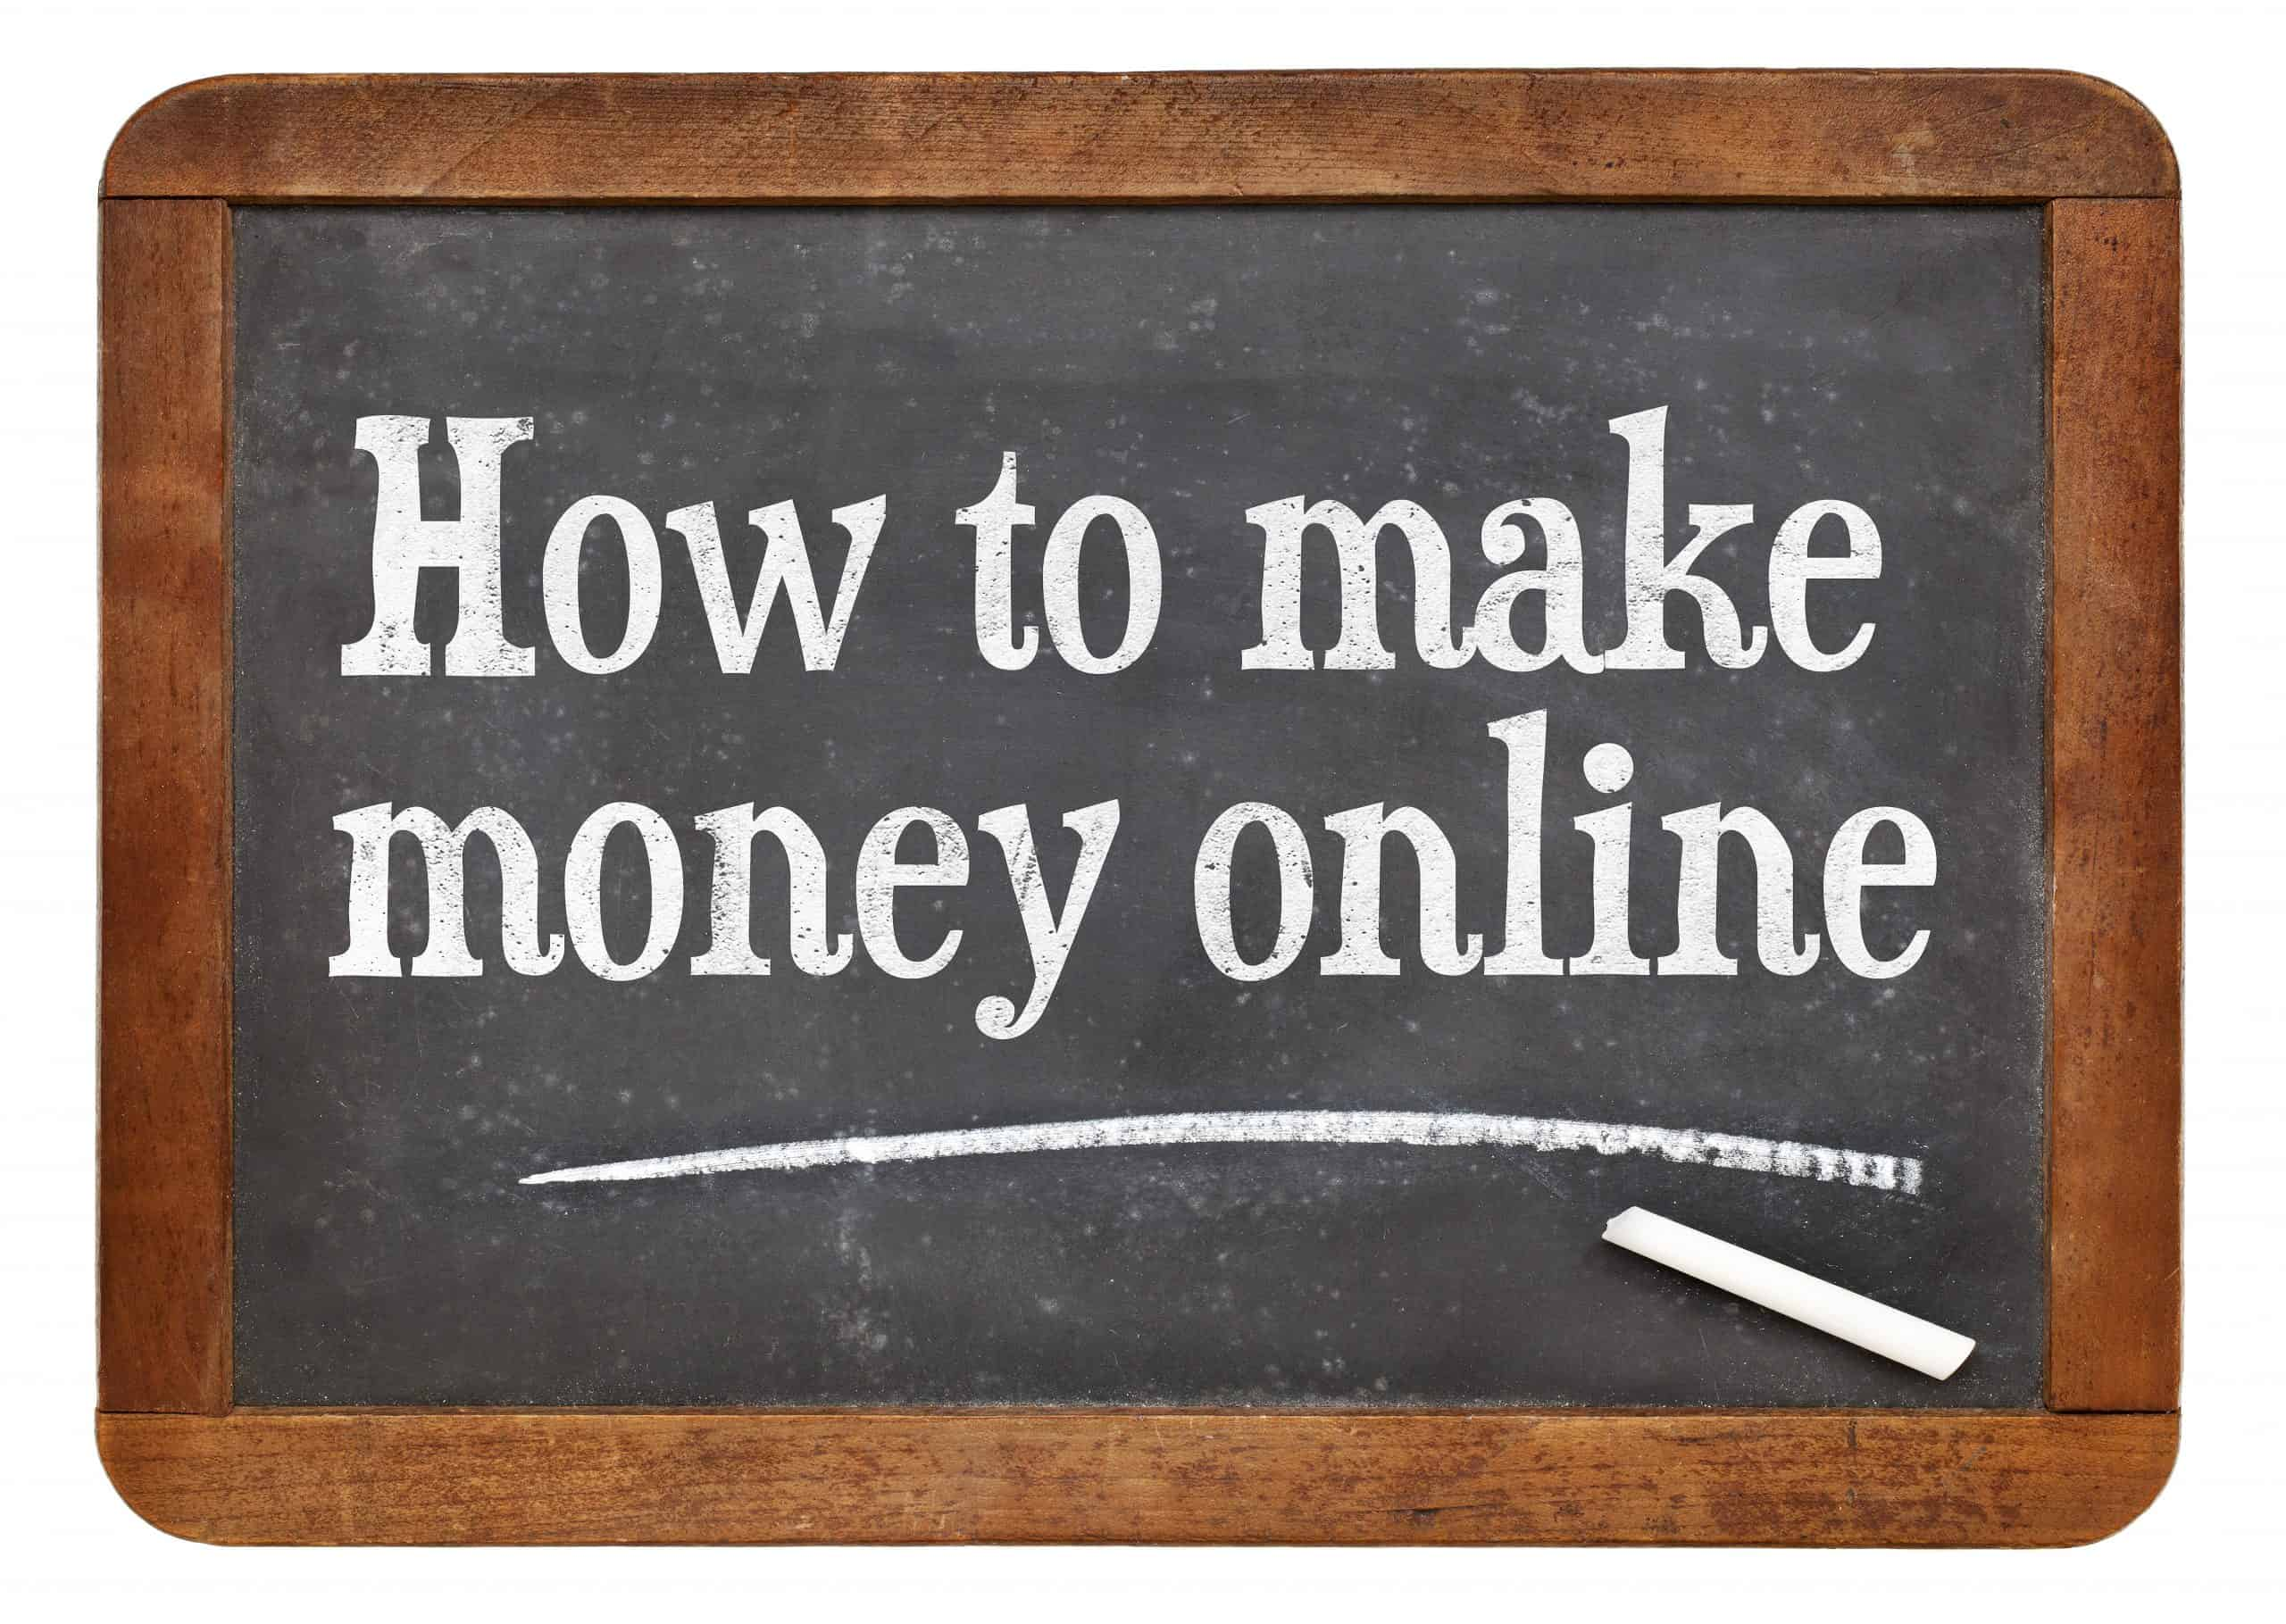 How Does Making Money Online Work: My Recommended Guide to Become Successful